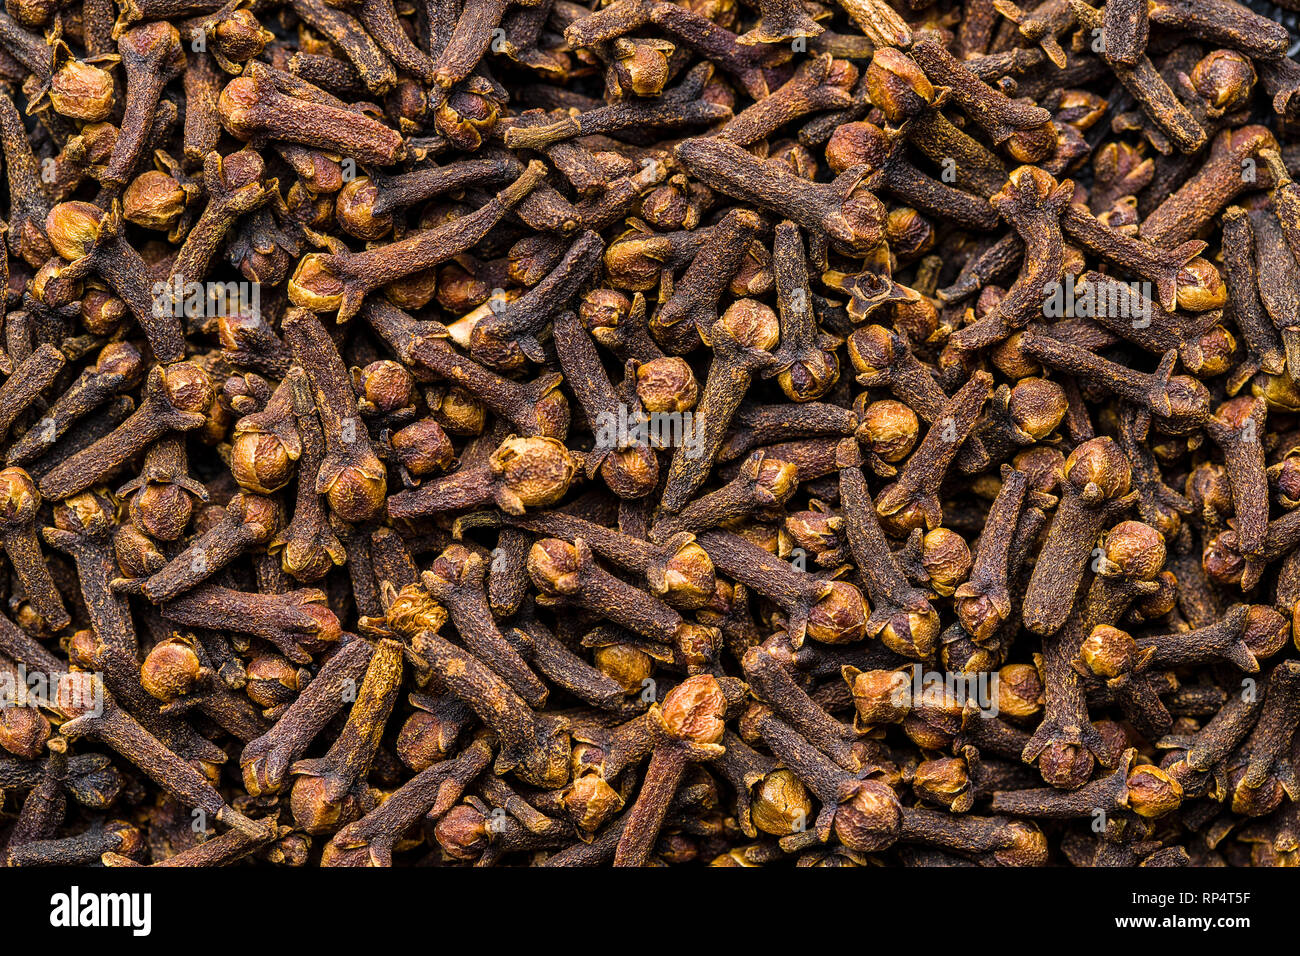 Carnation, dried clove spice. Top view. - Stock Image